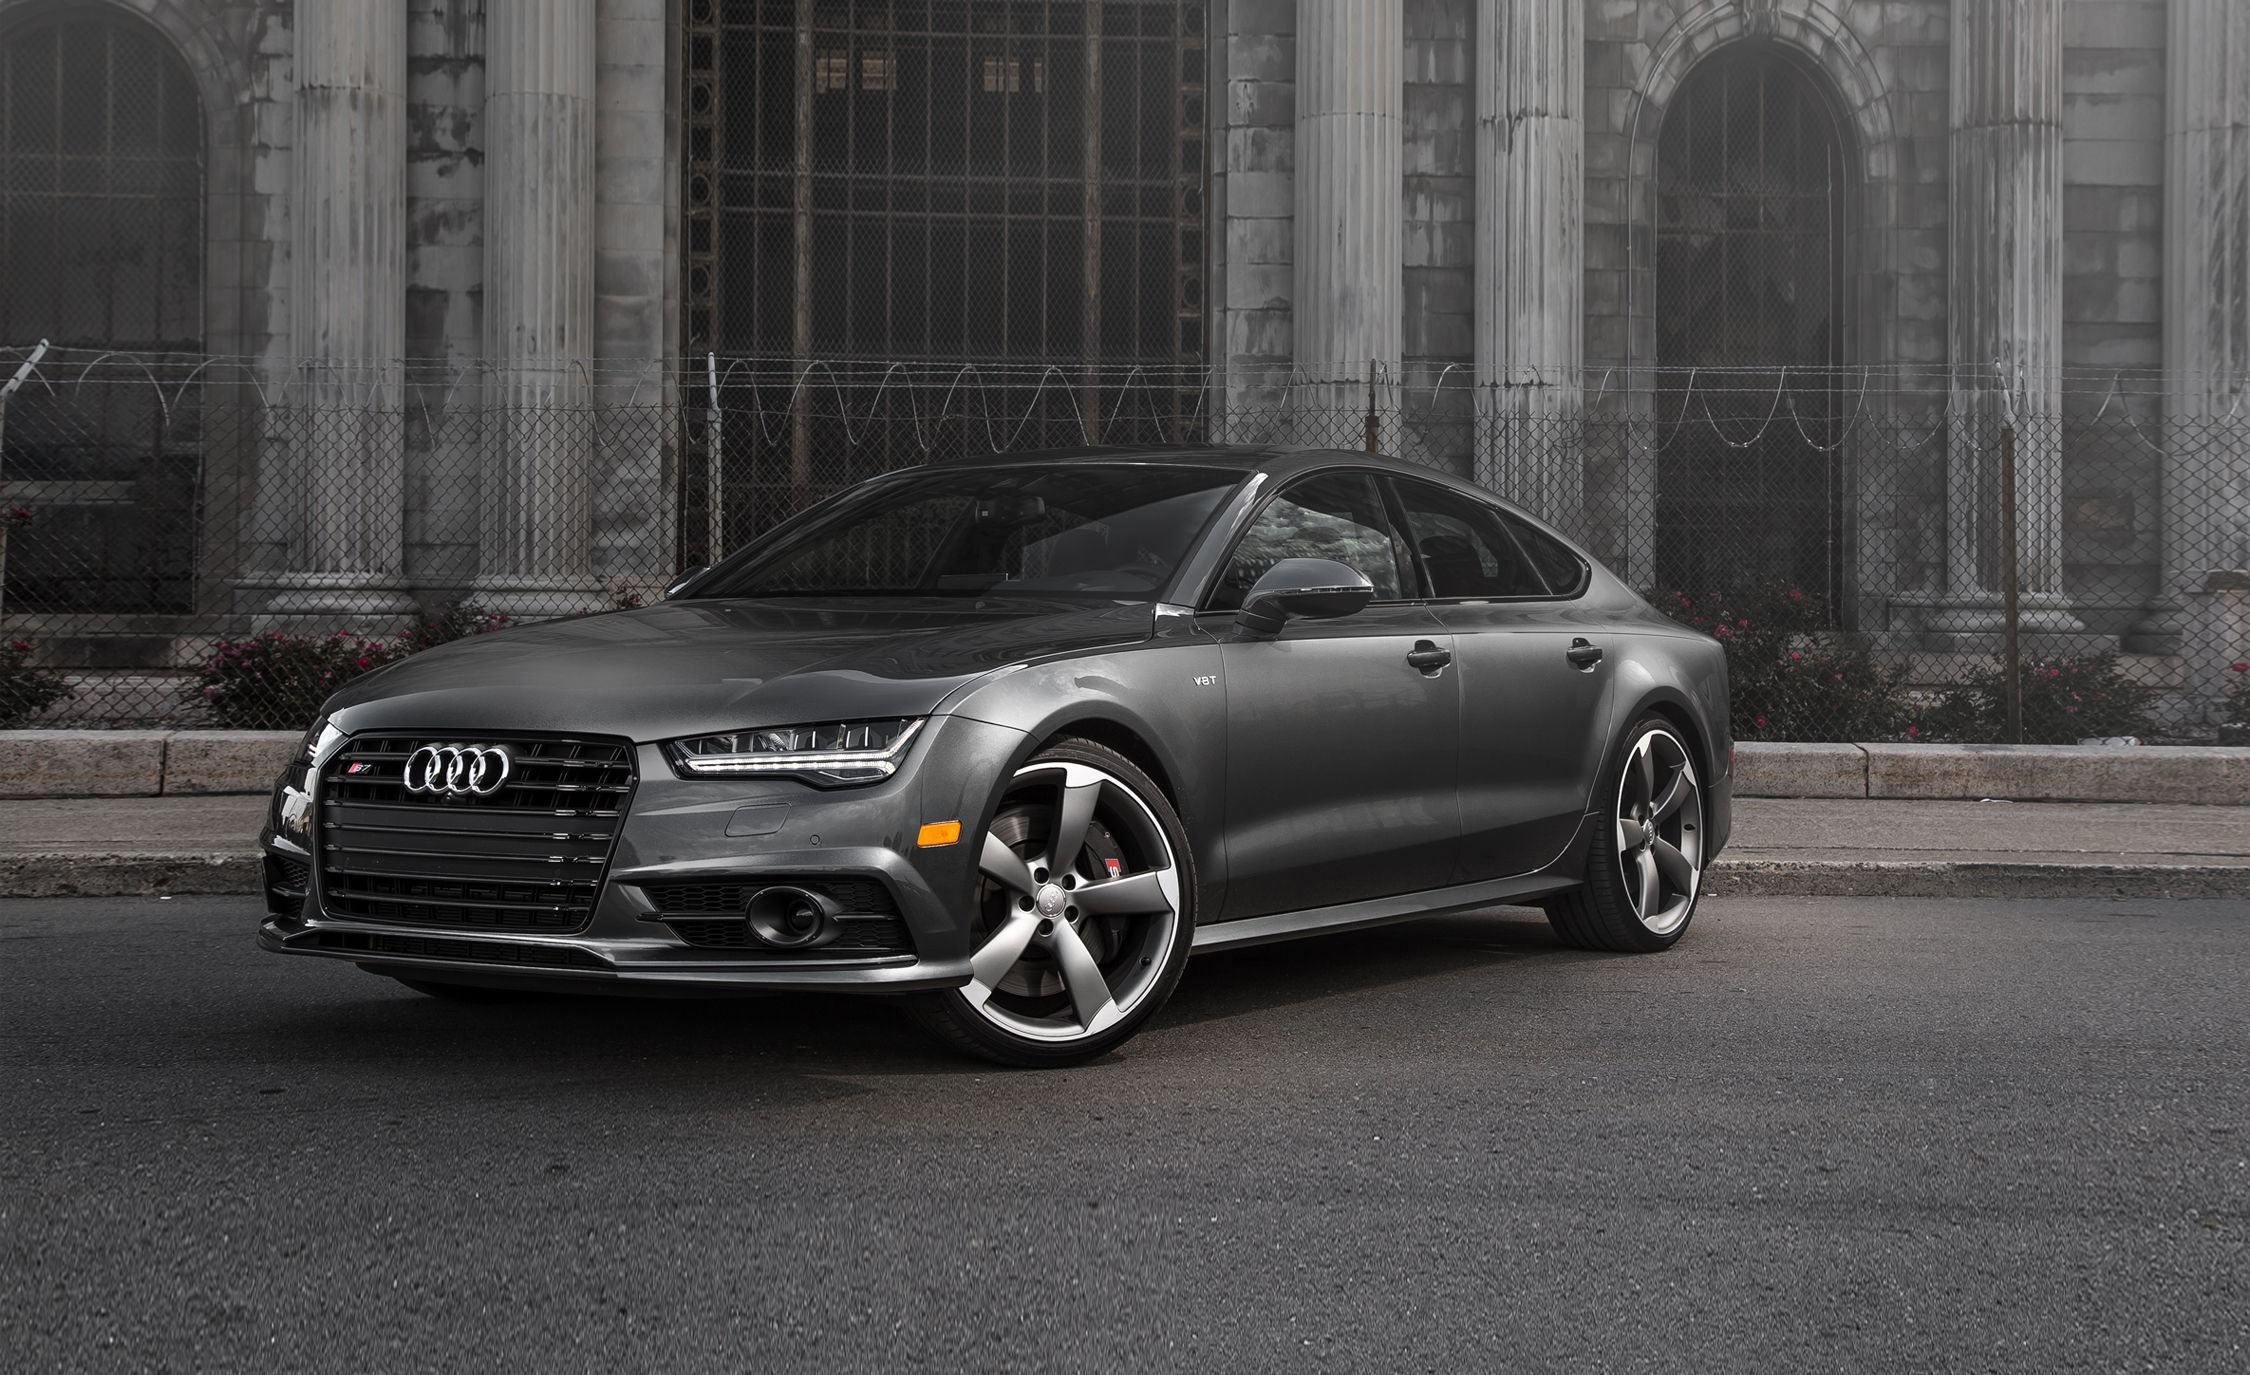 2020 Audi S7 Reviews Audi S7 Price Photos And Specs Car And Driver